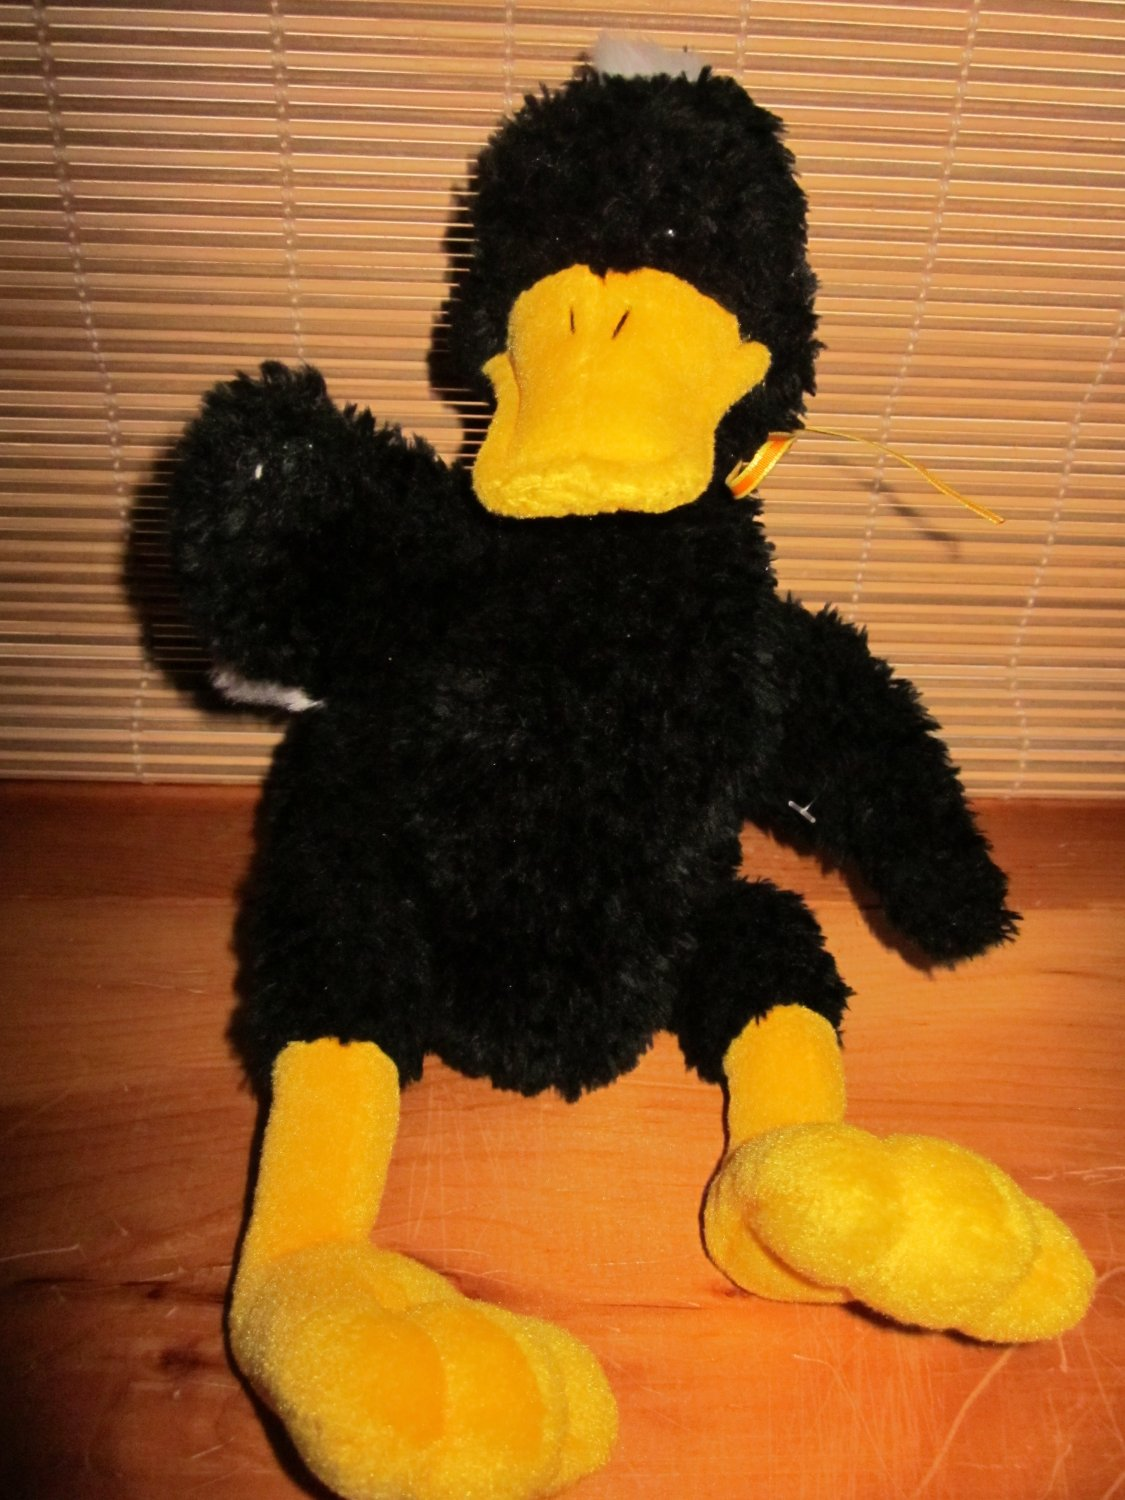 Gund Plush Black Duck Named Dunkln 5261